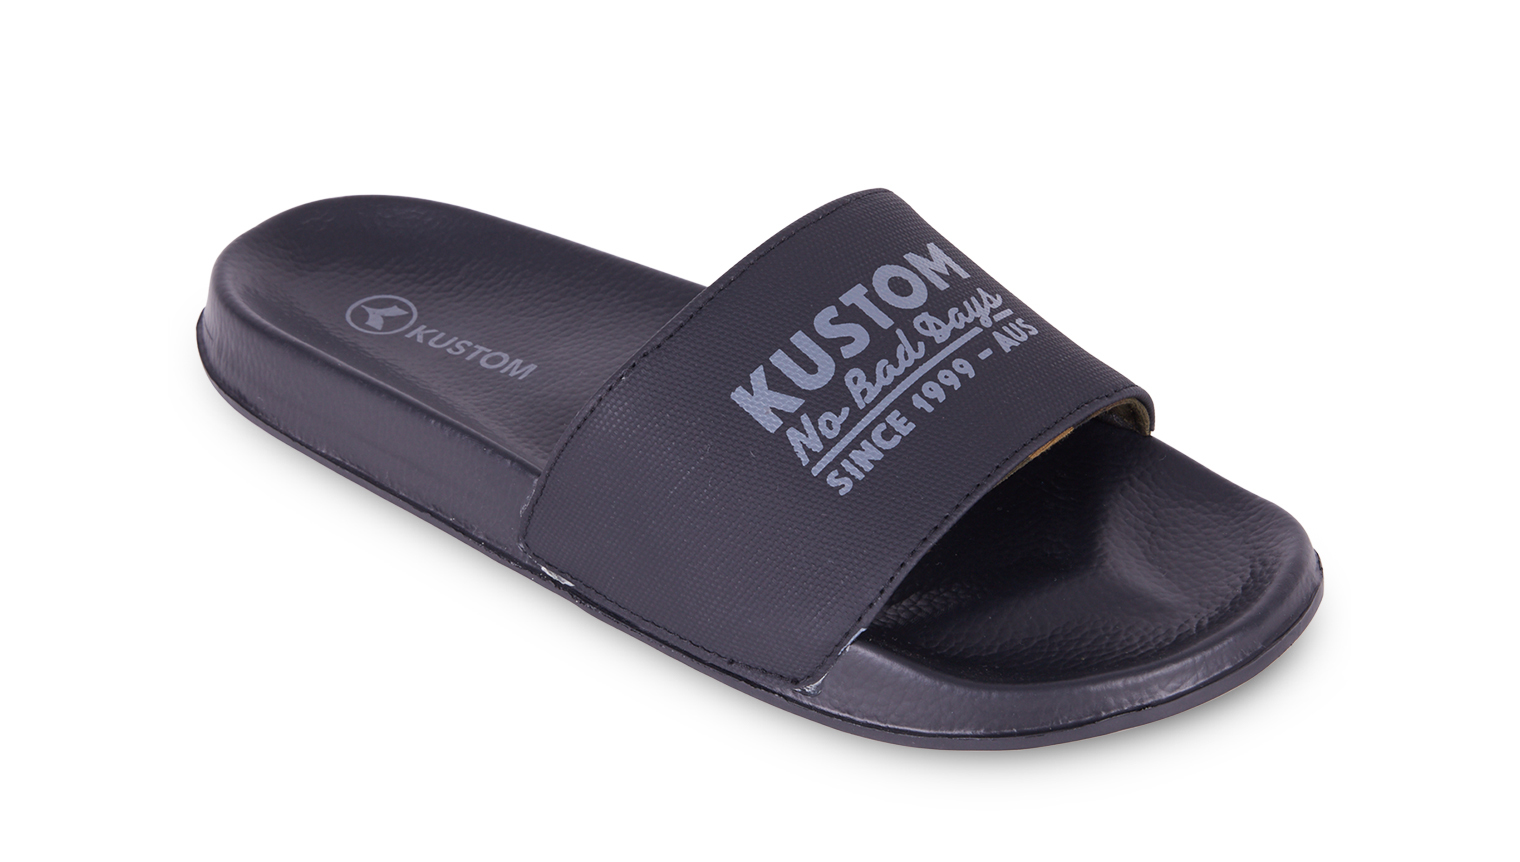 KUSTOM THONGS SUNDAY SLIDE / BLACK CAMO